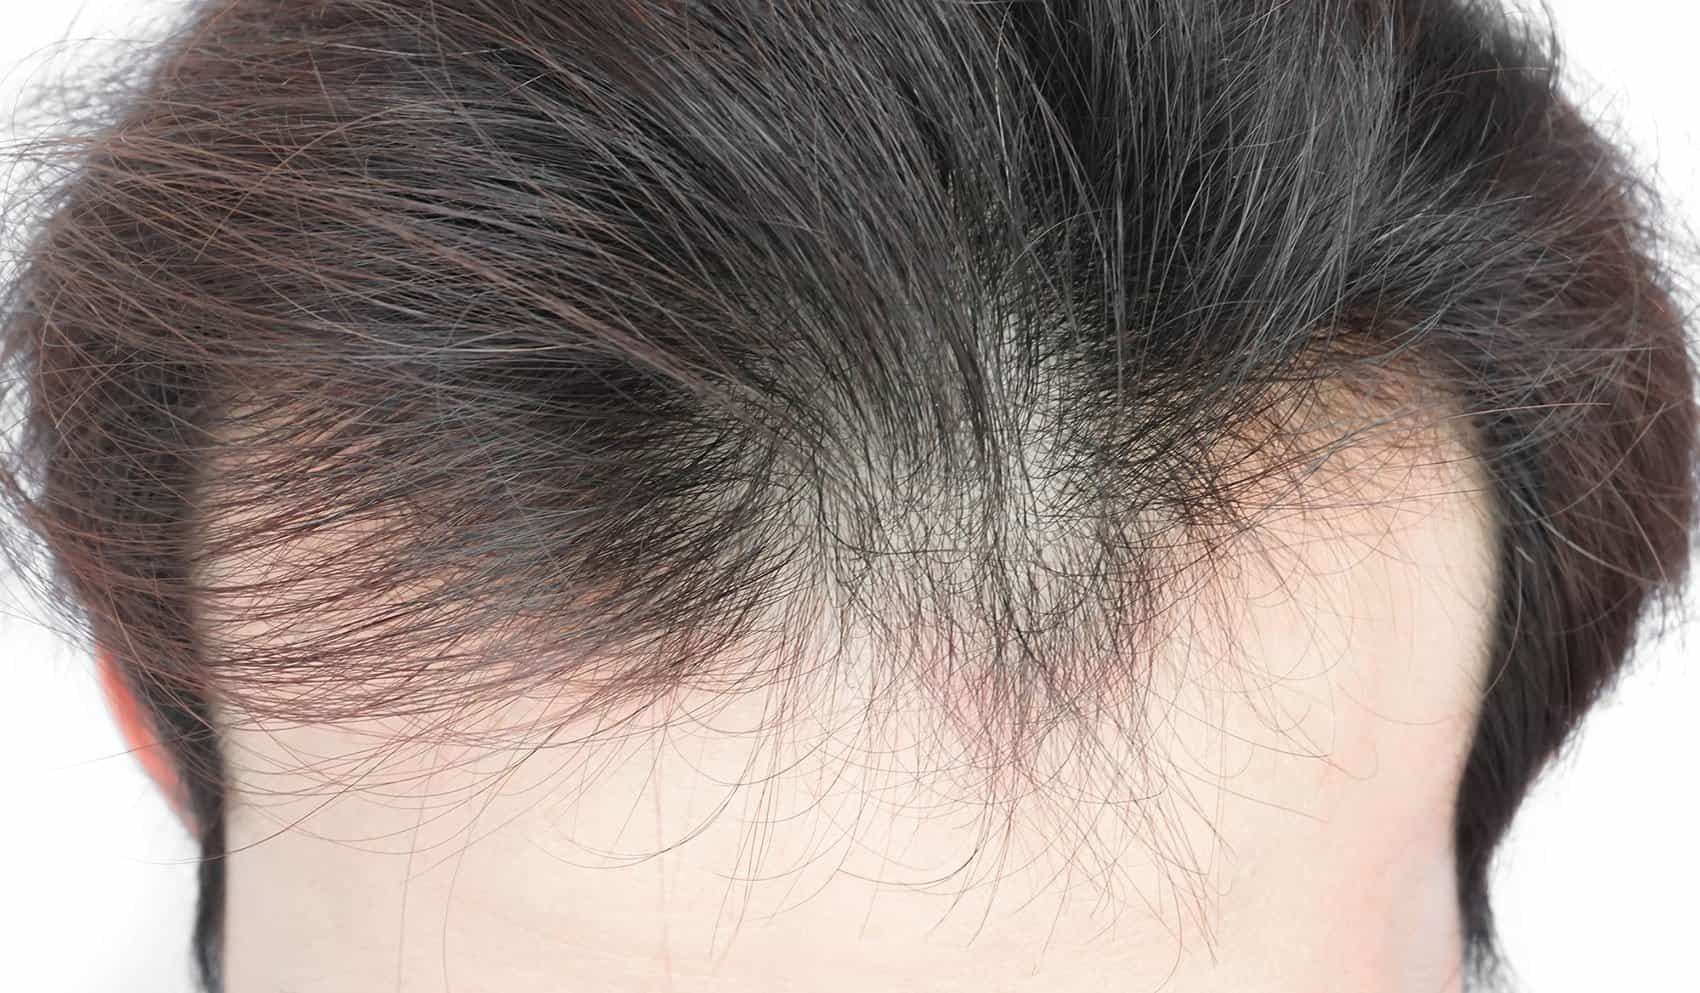 How do you recognize thinning hair - Zty Hair Transplant Turkey - Istanbul